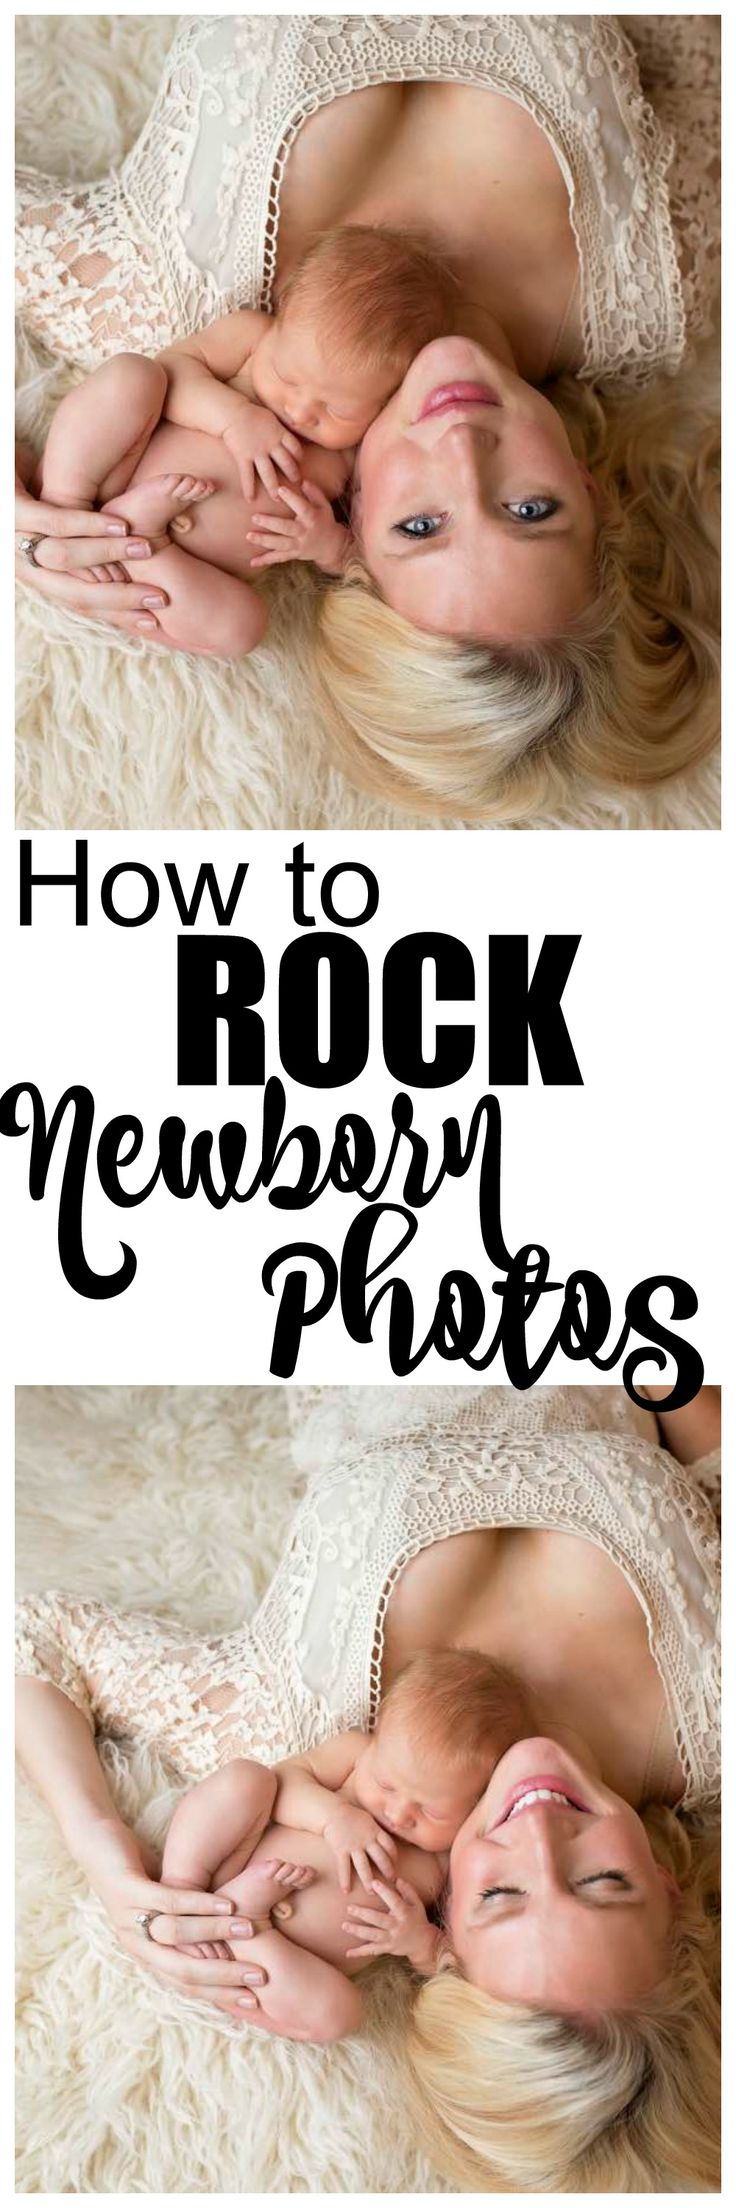 Newborn Photography: How to rock Newborn Photos.  Newborn photography ideas. Maternity photo ideas